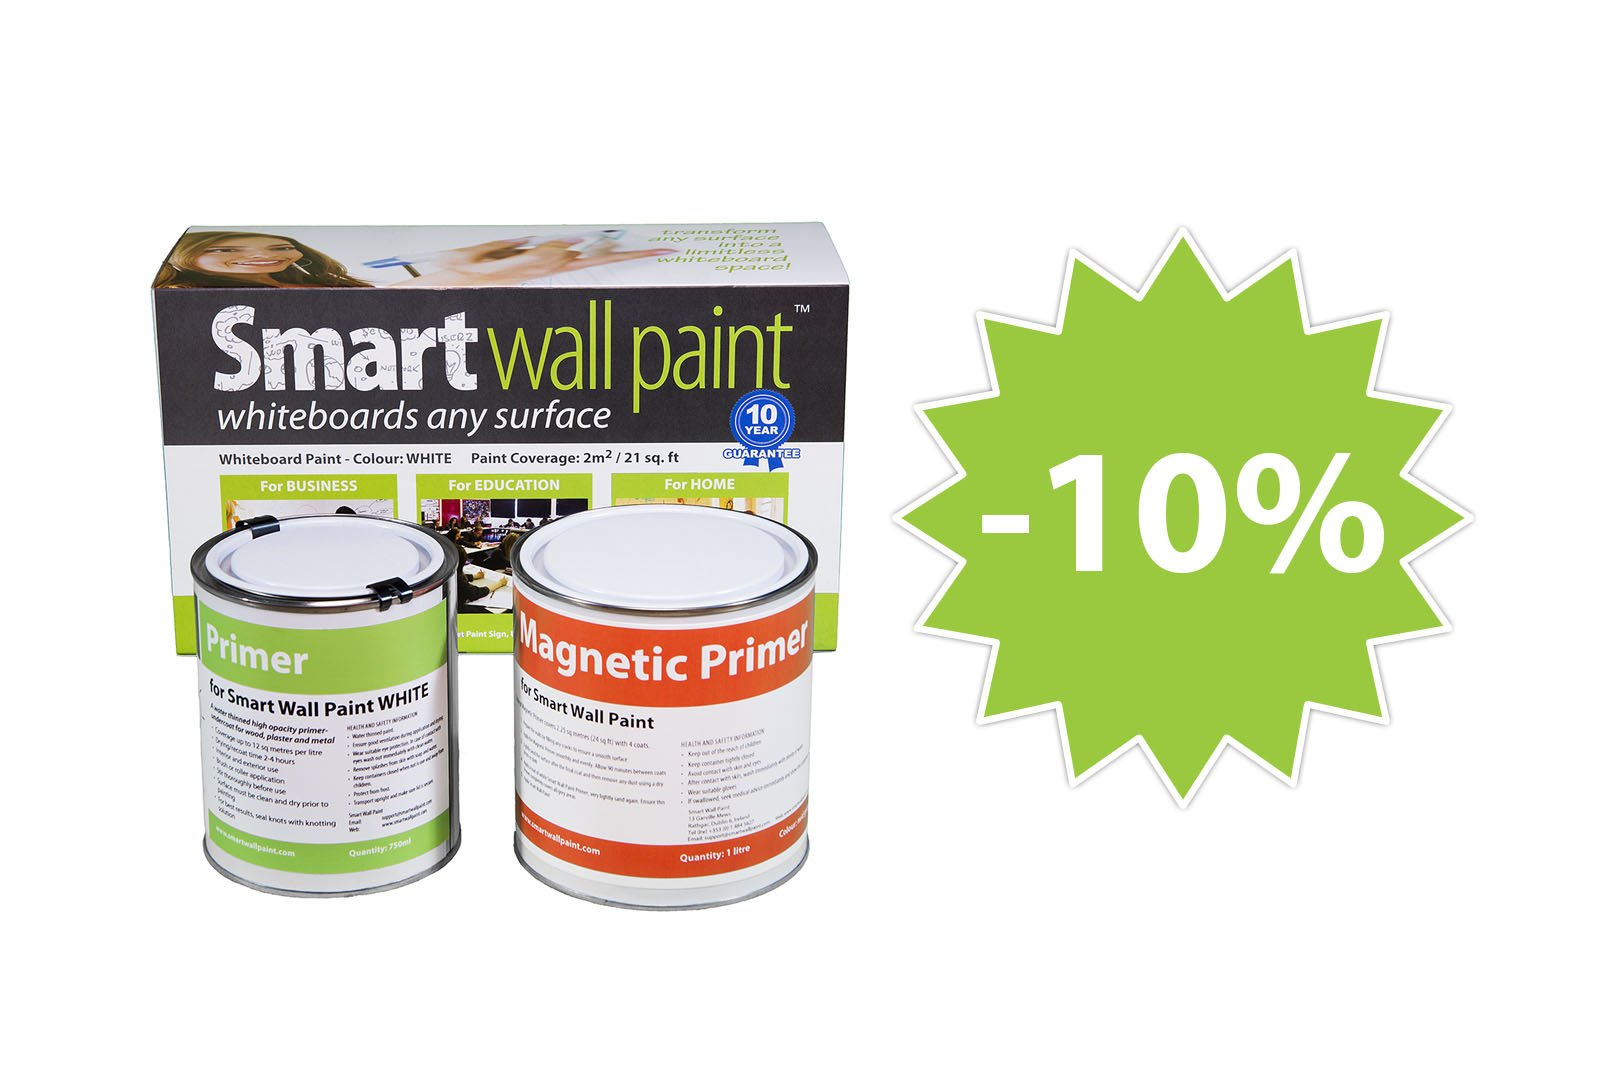 Magnetic & Dry-Erase Paint 2m² / 21 sq ft - White